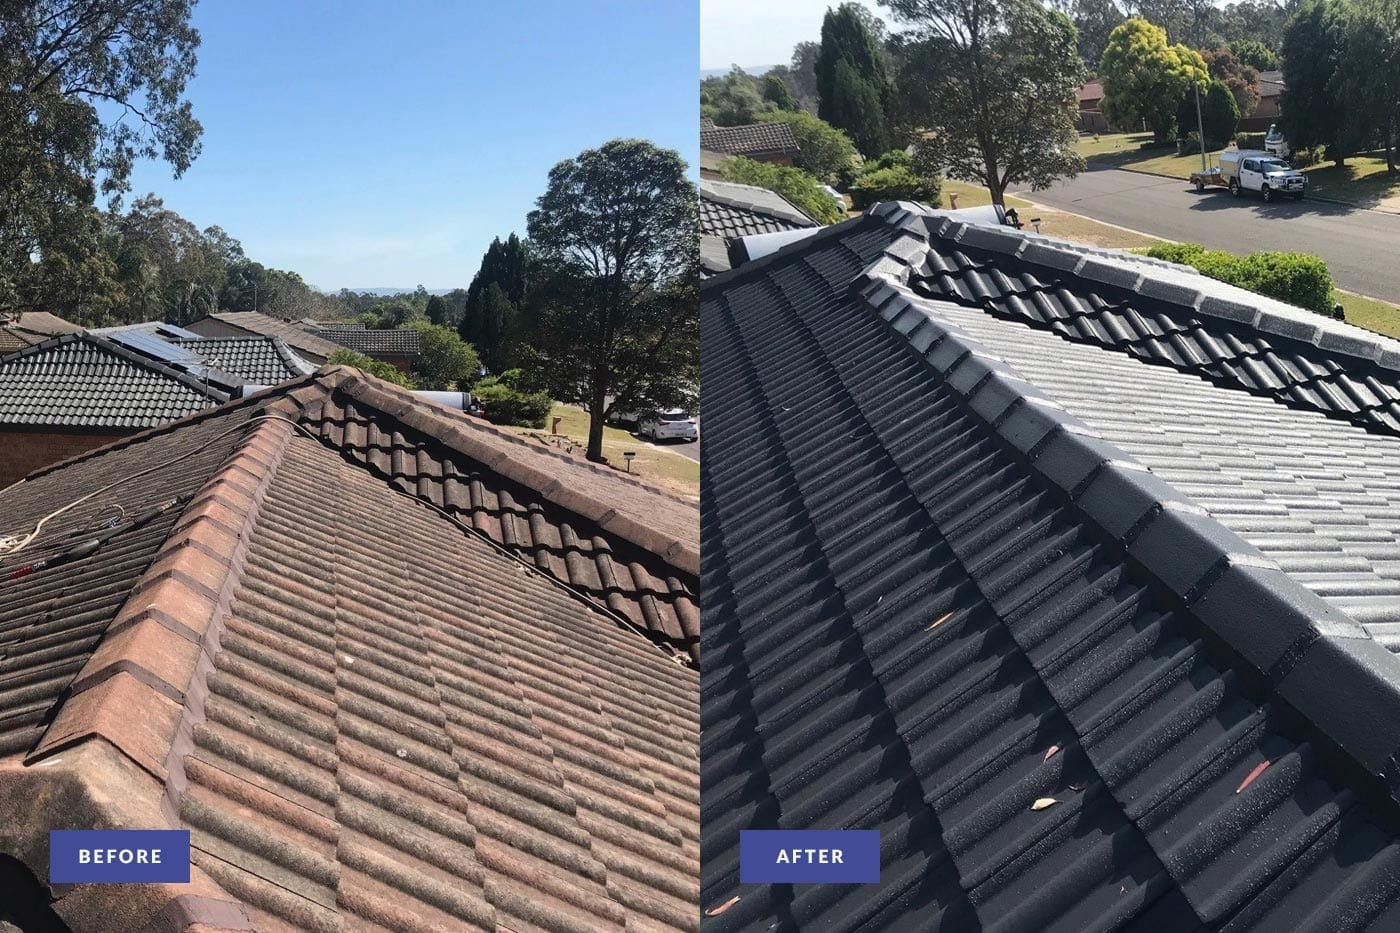 tiled roof restored and painted in newcastle before and after